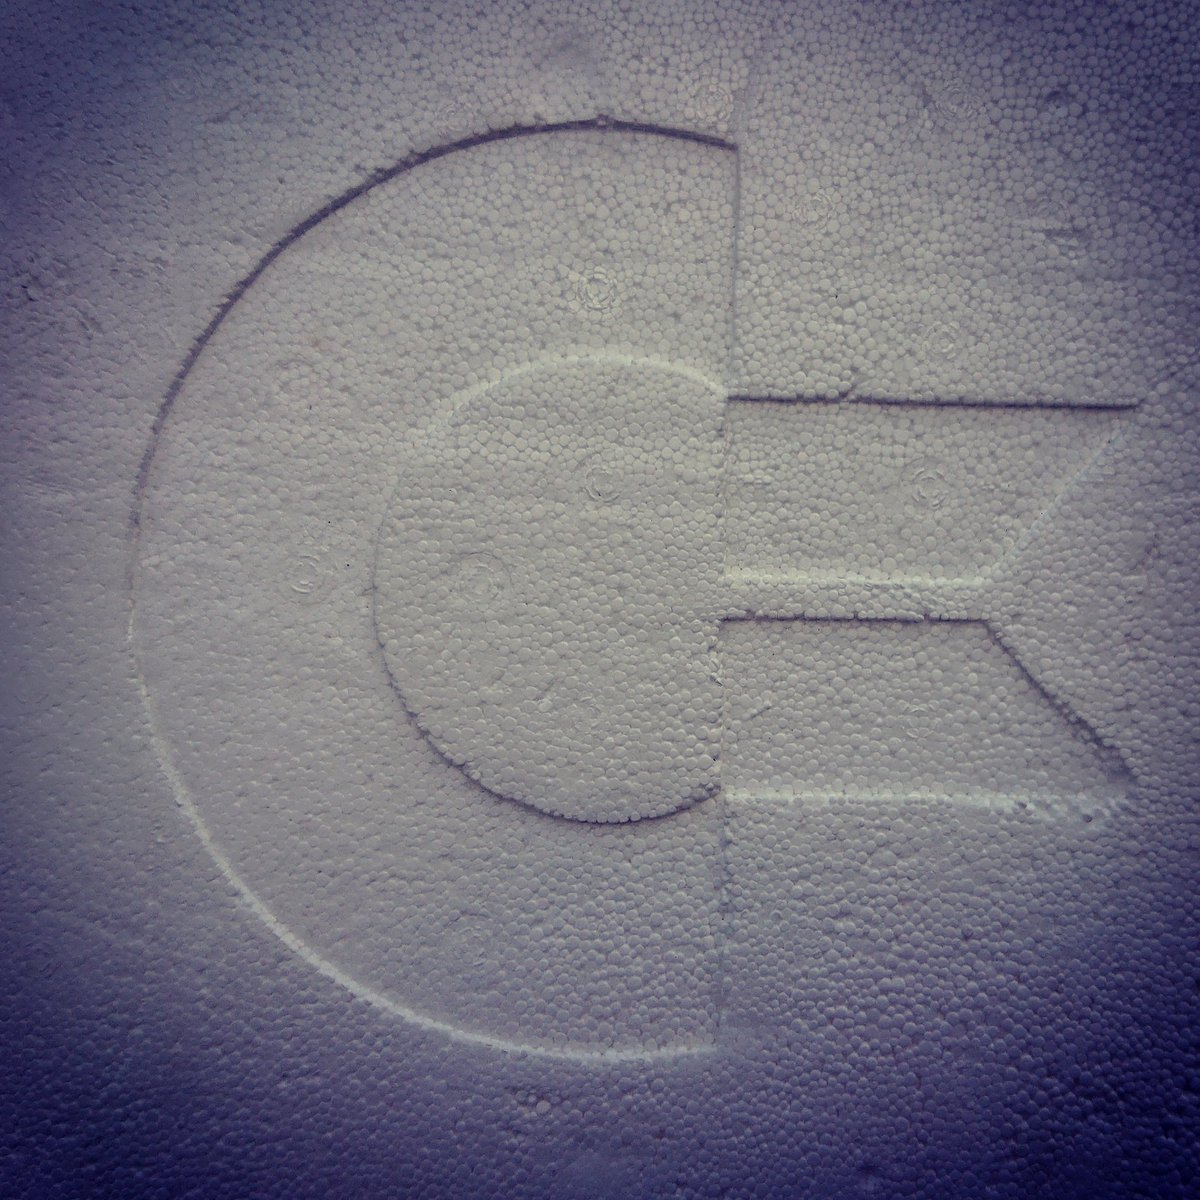 Probably the most beautiful piece of styrofoam. #commodore #c64pic.twitter.com/nKXDqQQYLi